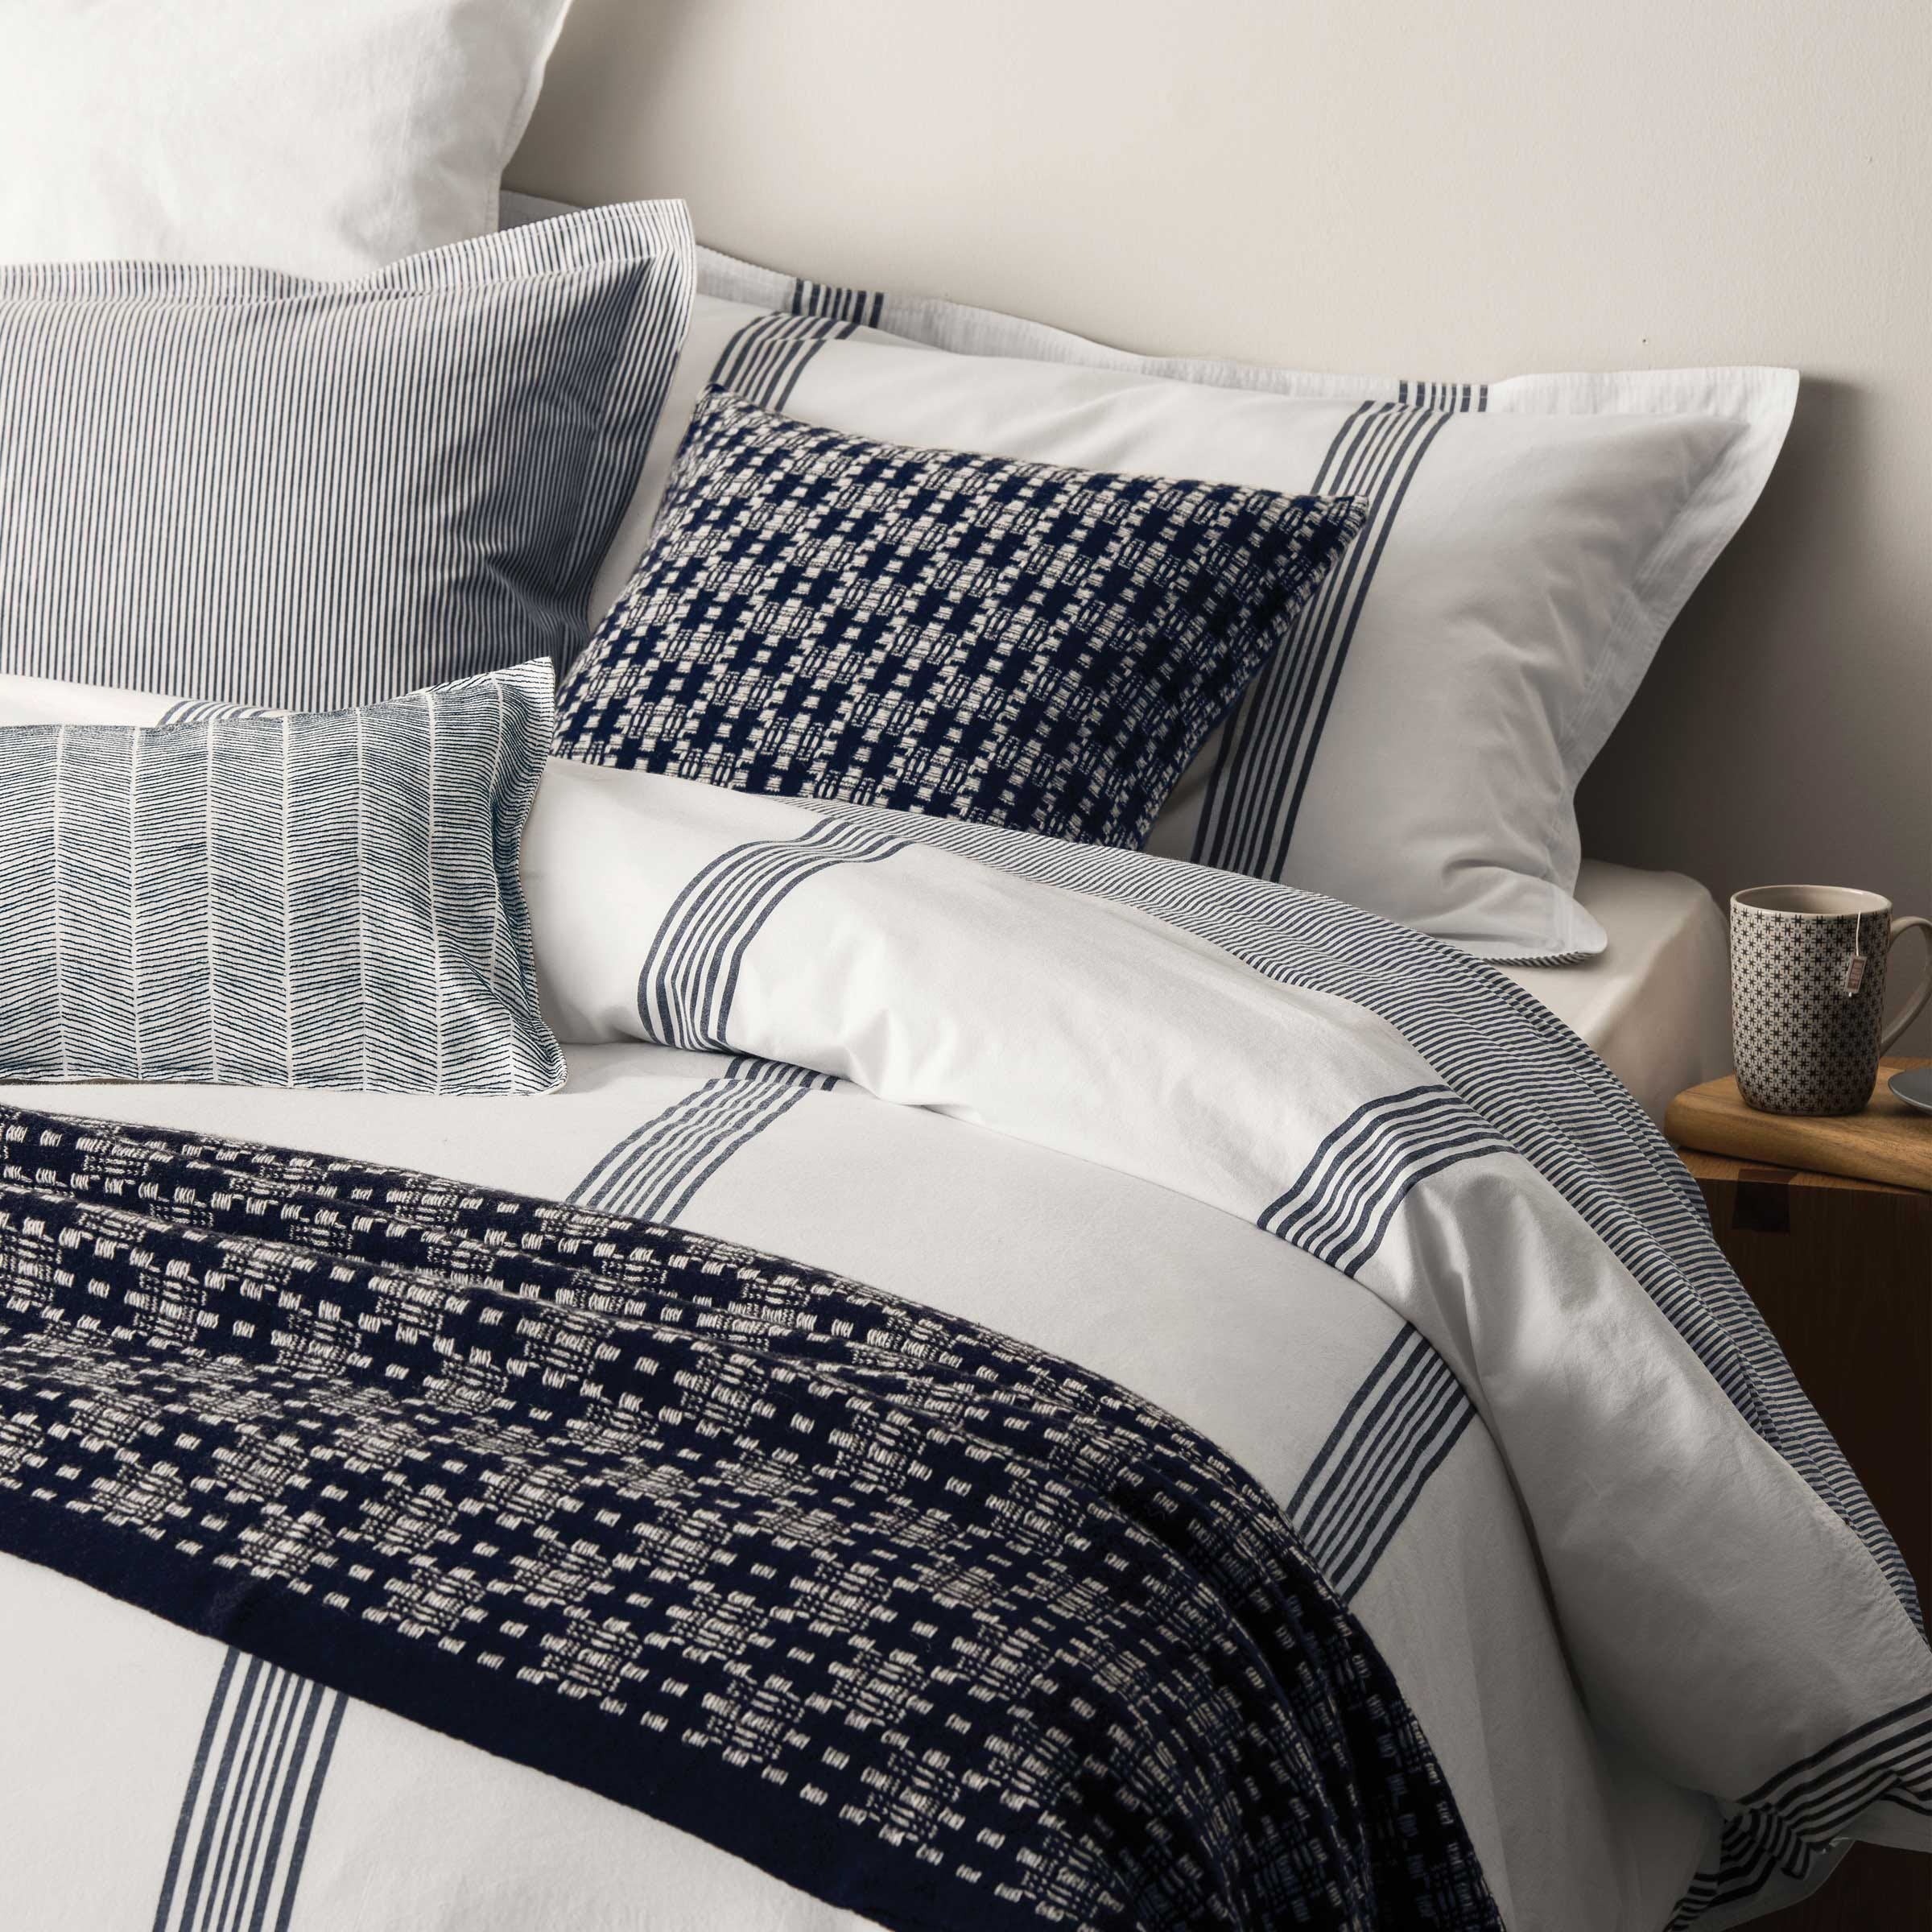 Murmur Broad Stripe Single Duvet Cover White & Indigo